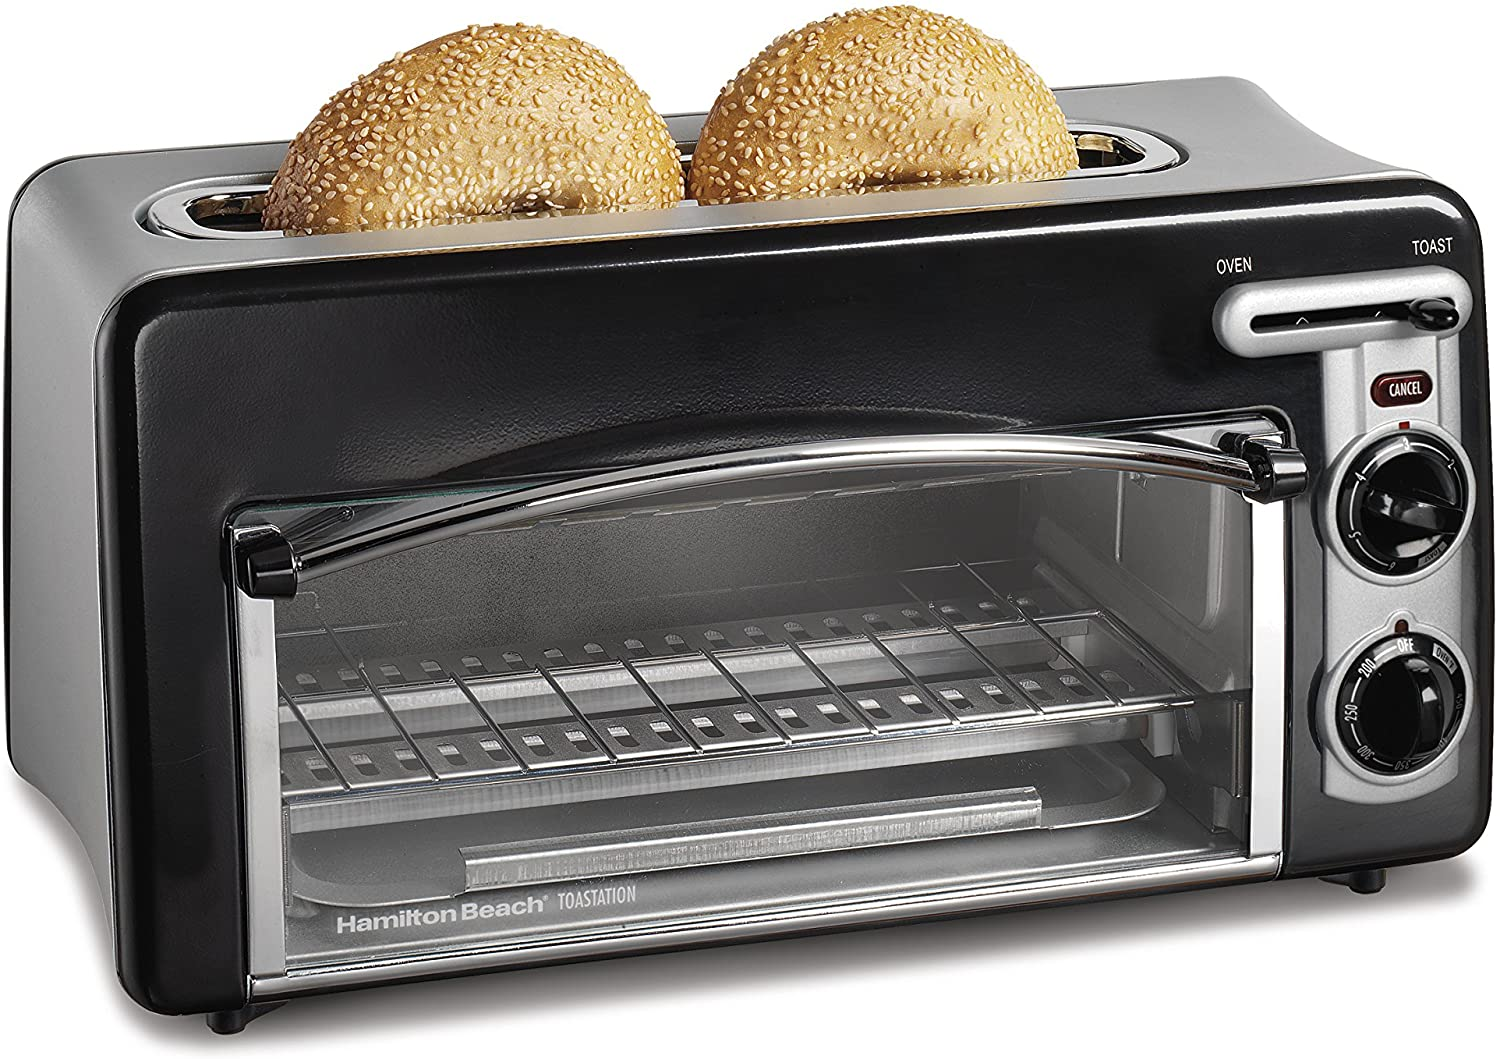 Amazon Day: Best Mini Toaster Oven 2020 That Matches your Mouth-Watering Breakfast Meal